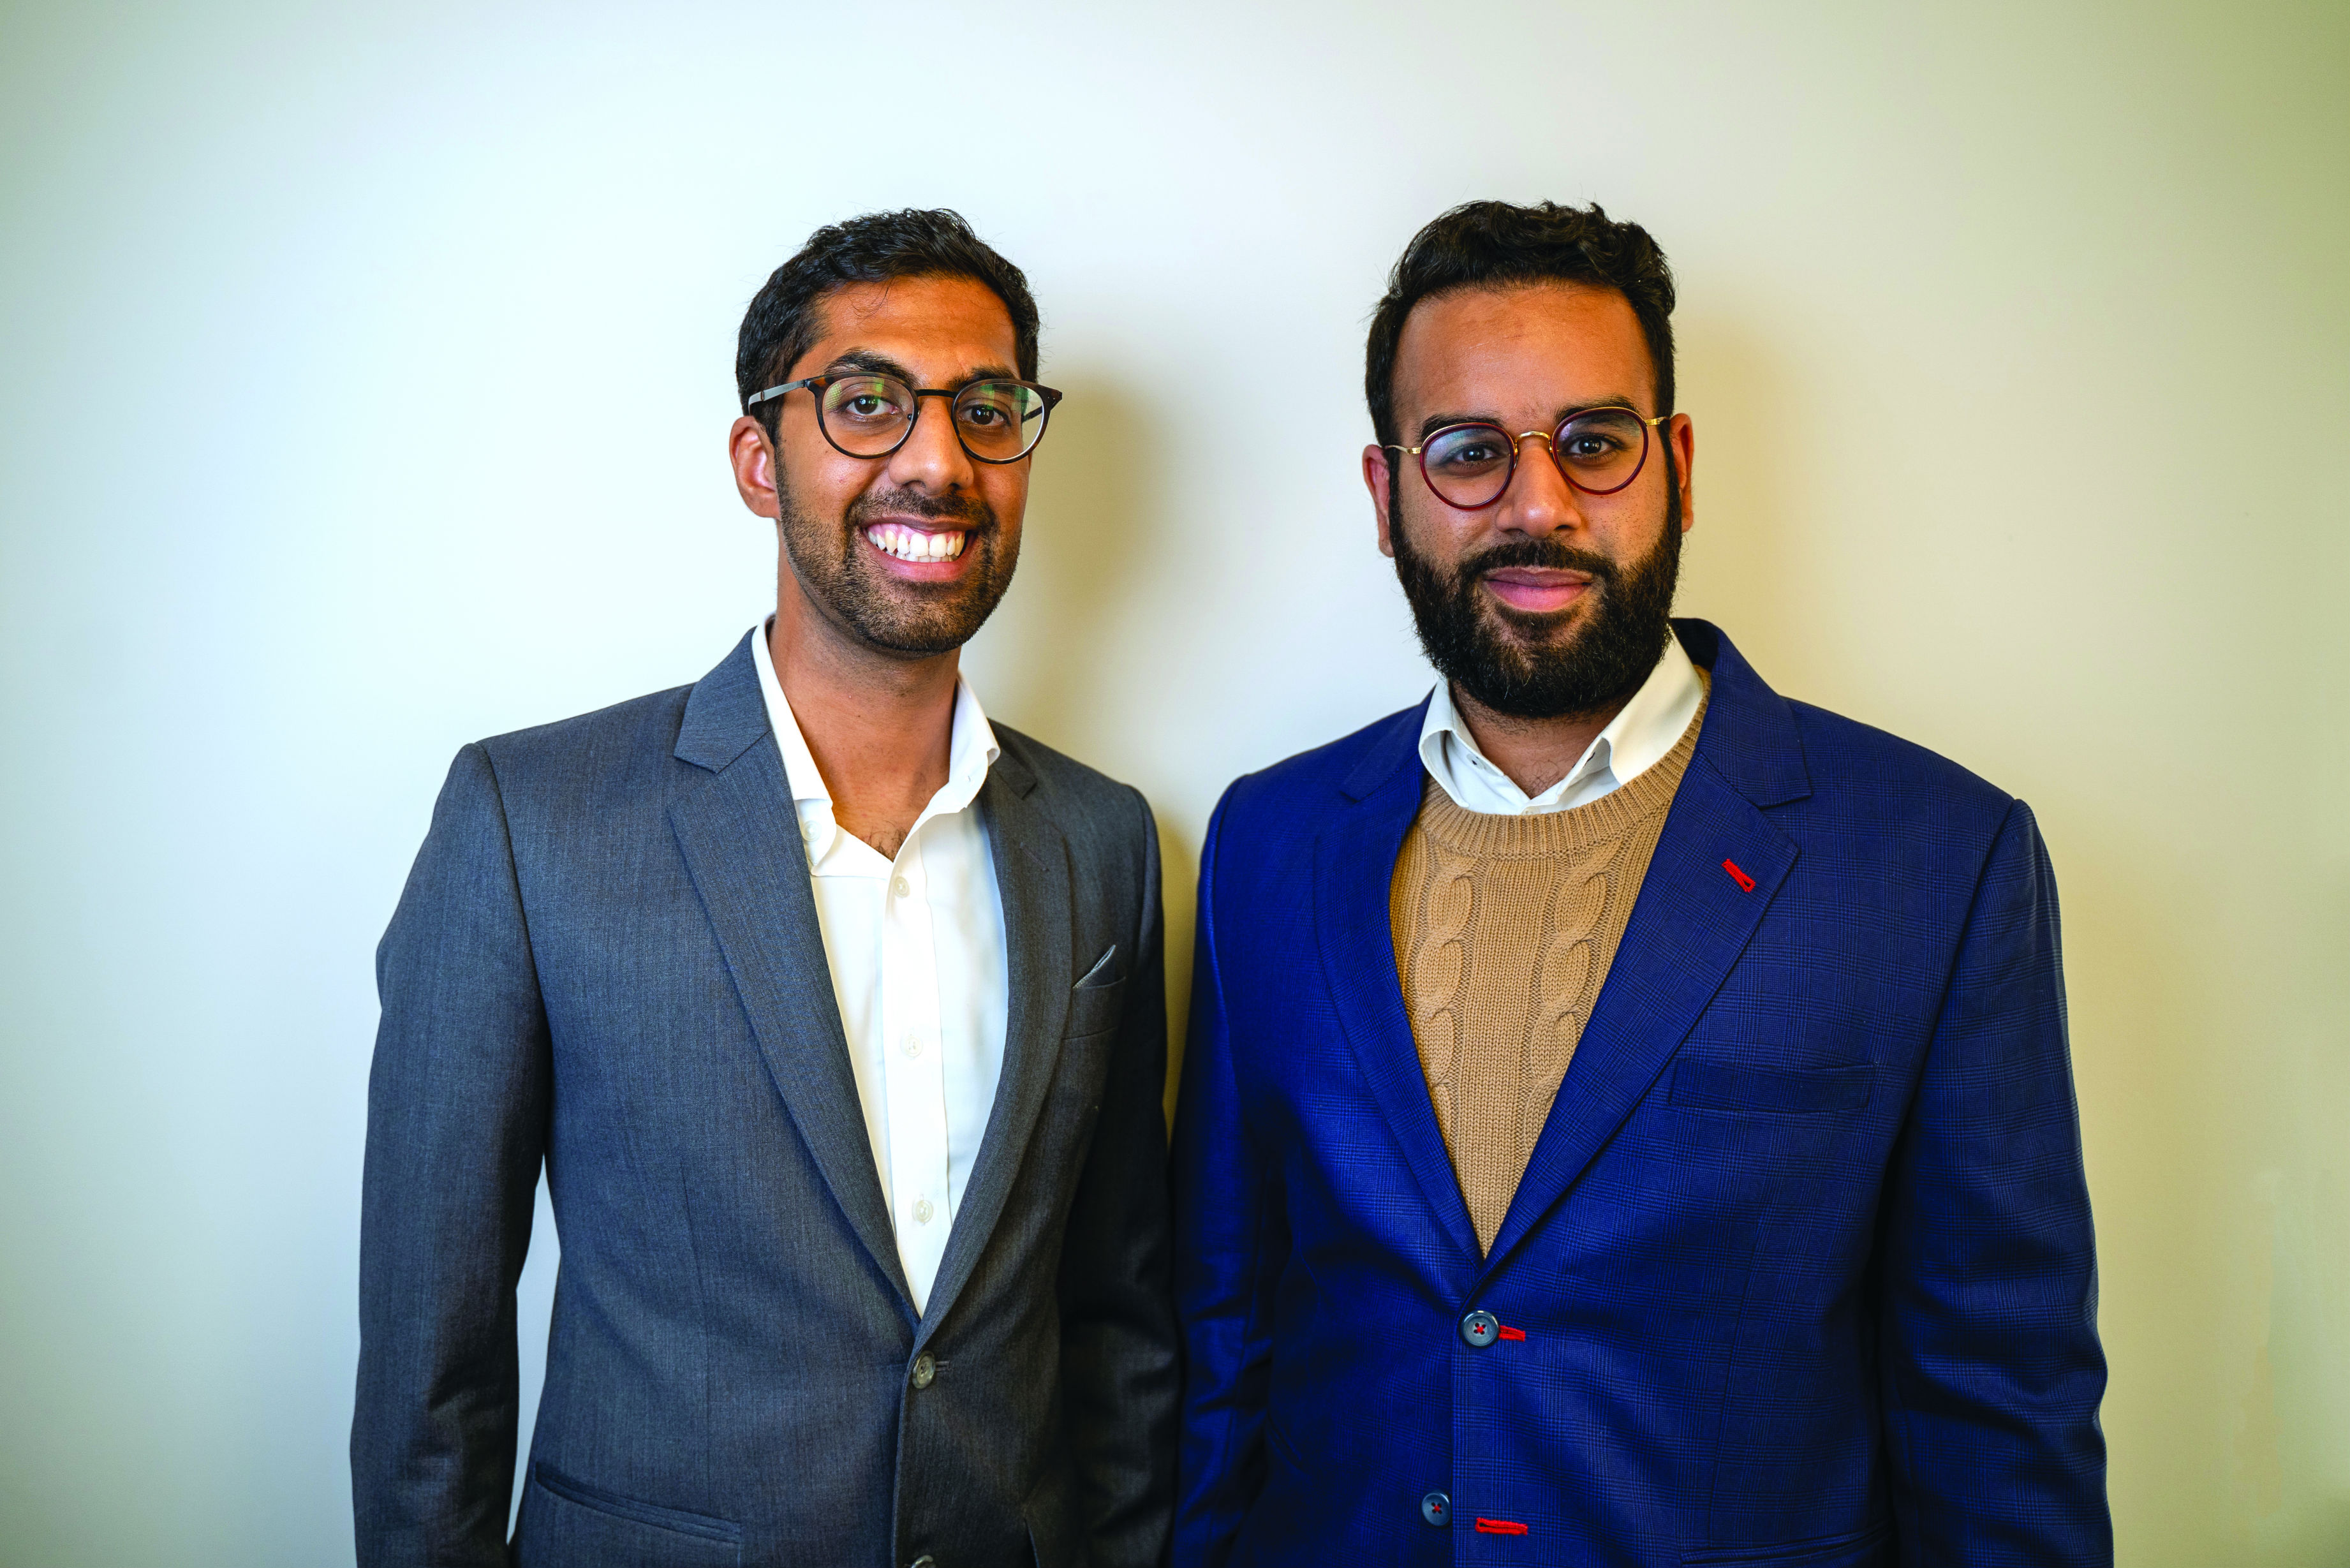 Major's managing director Qasim Gulamhusein (left) and sales and marketing director Mohammed Rashid